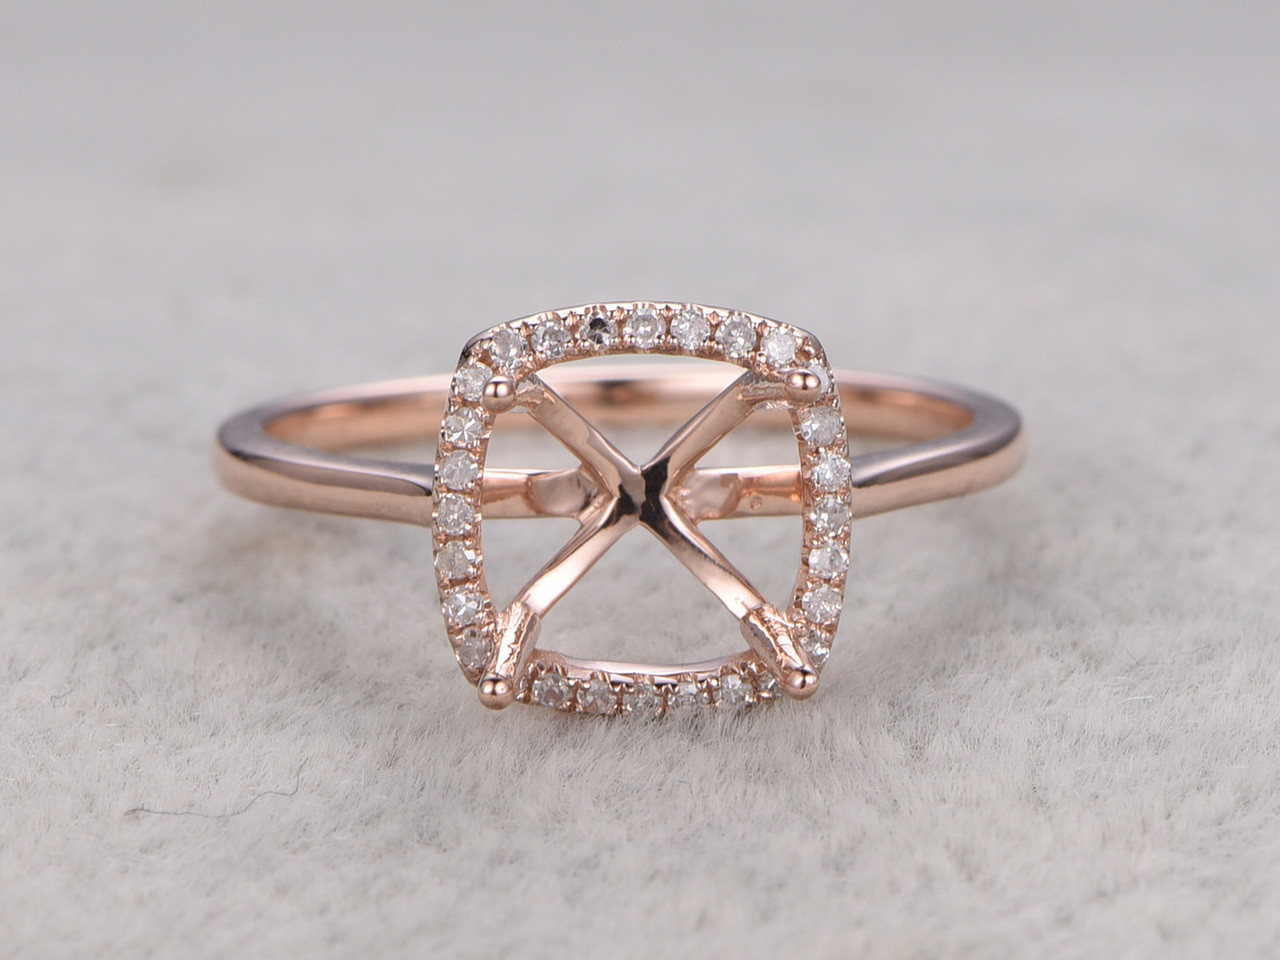 ring wedding rings cut rose engagement gold square diamond diamd